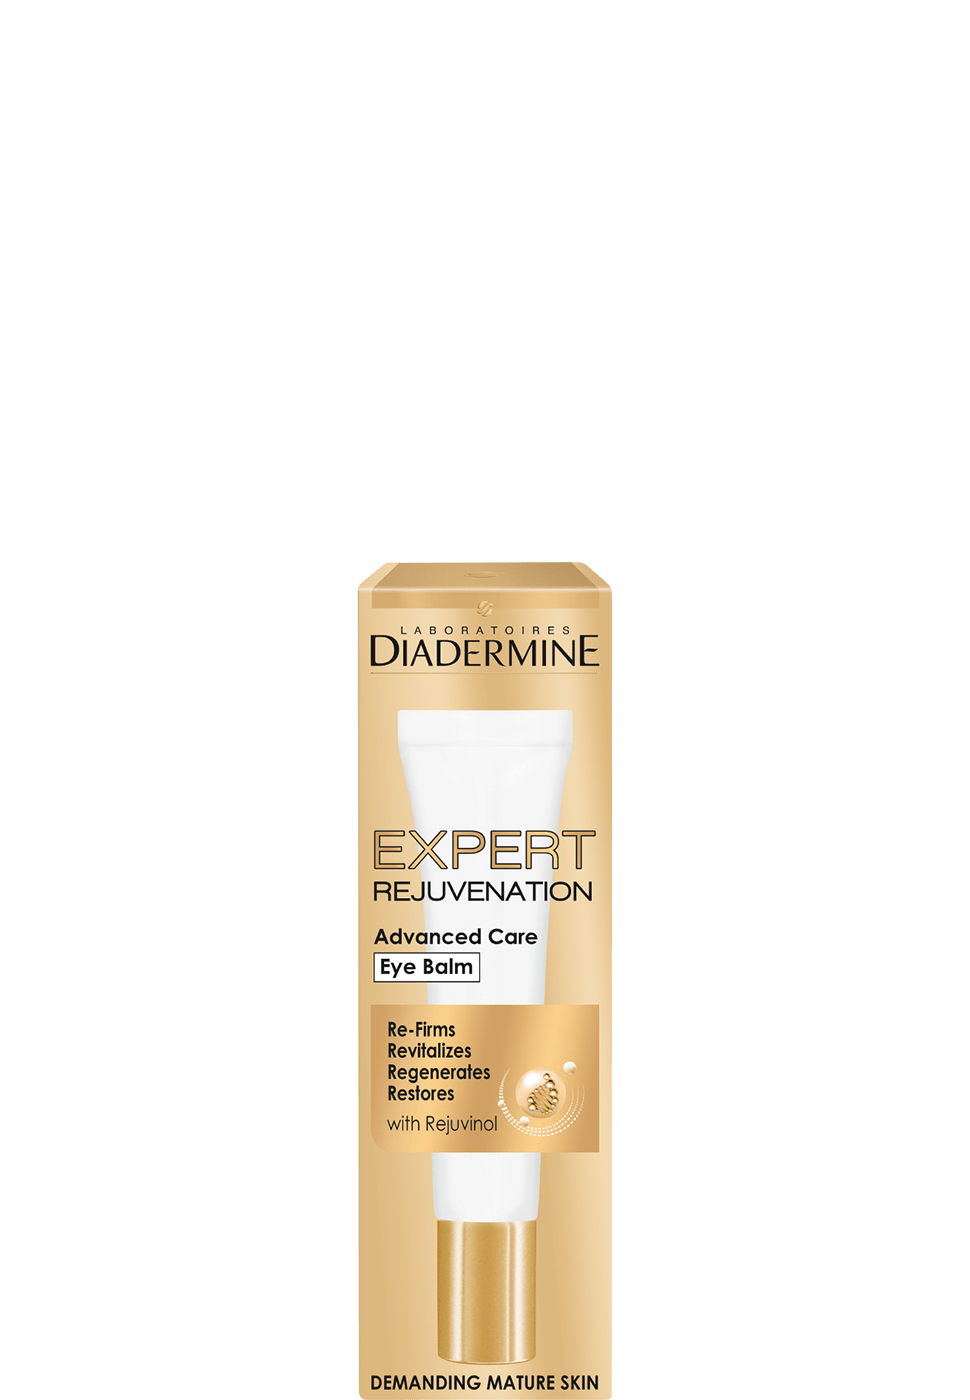 diadermine_com_expert_rejuvenation_advanced_care_eye_balm_970x1400